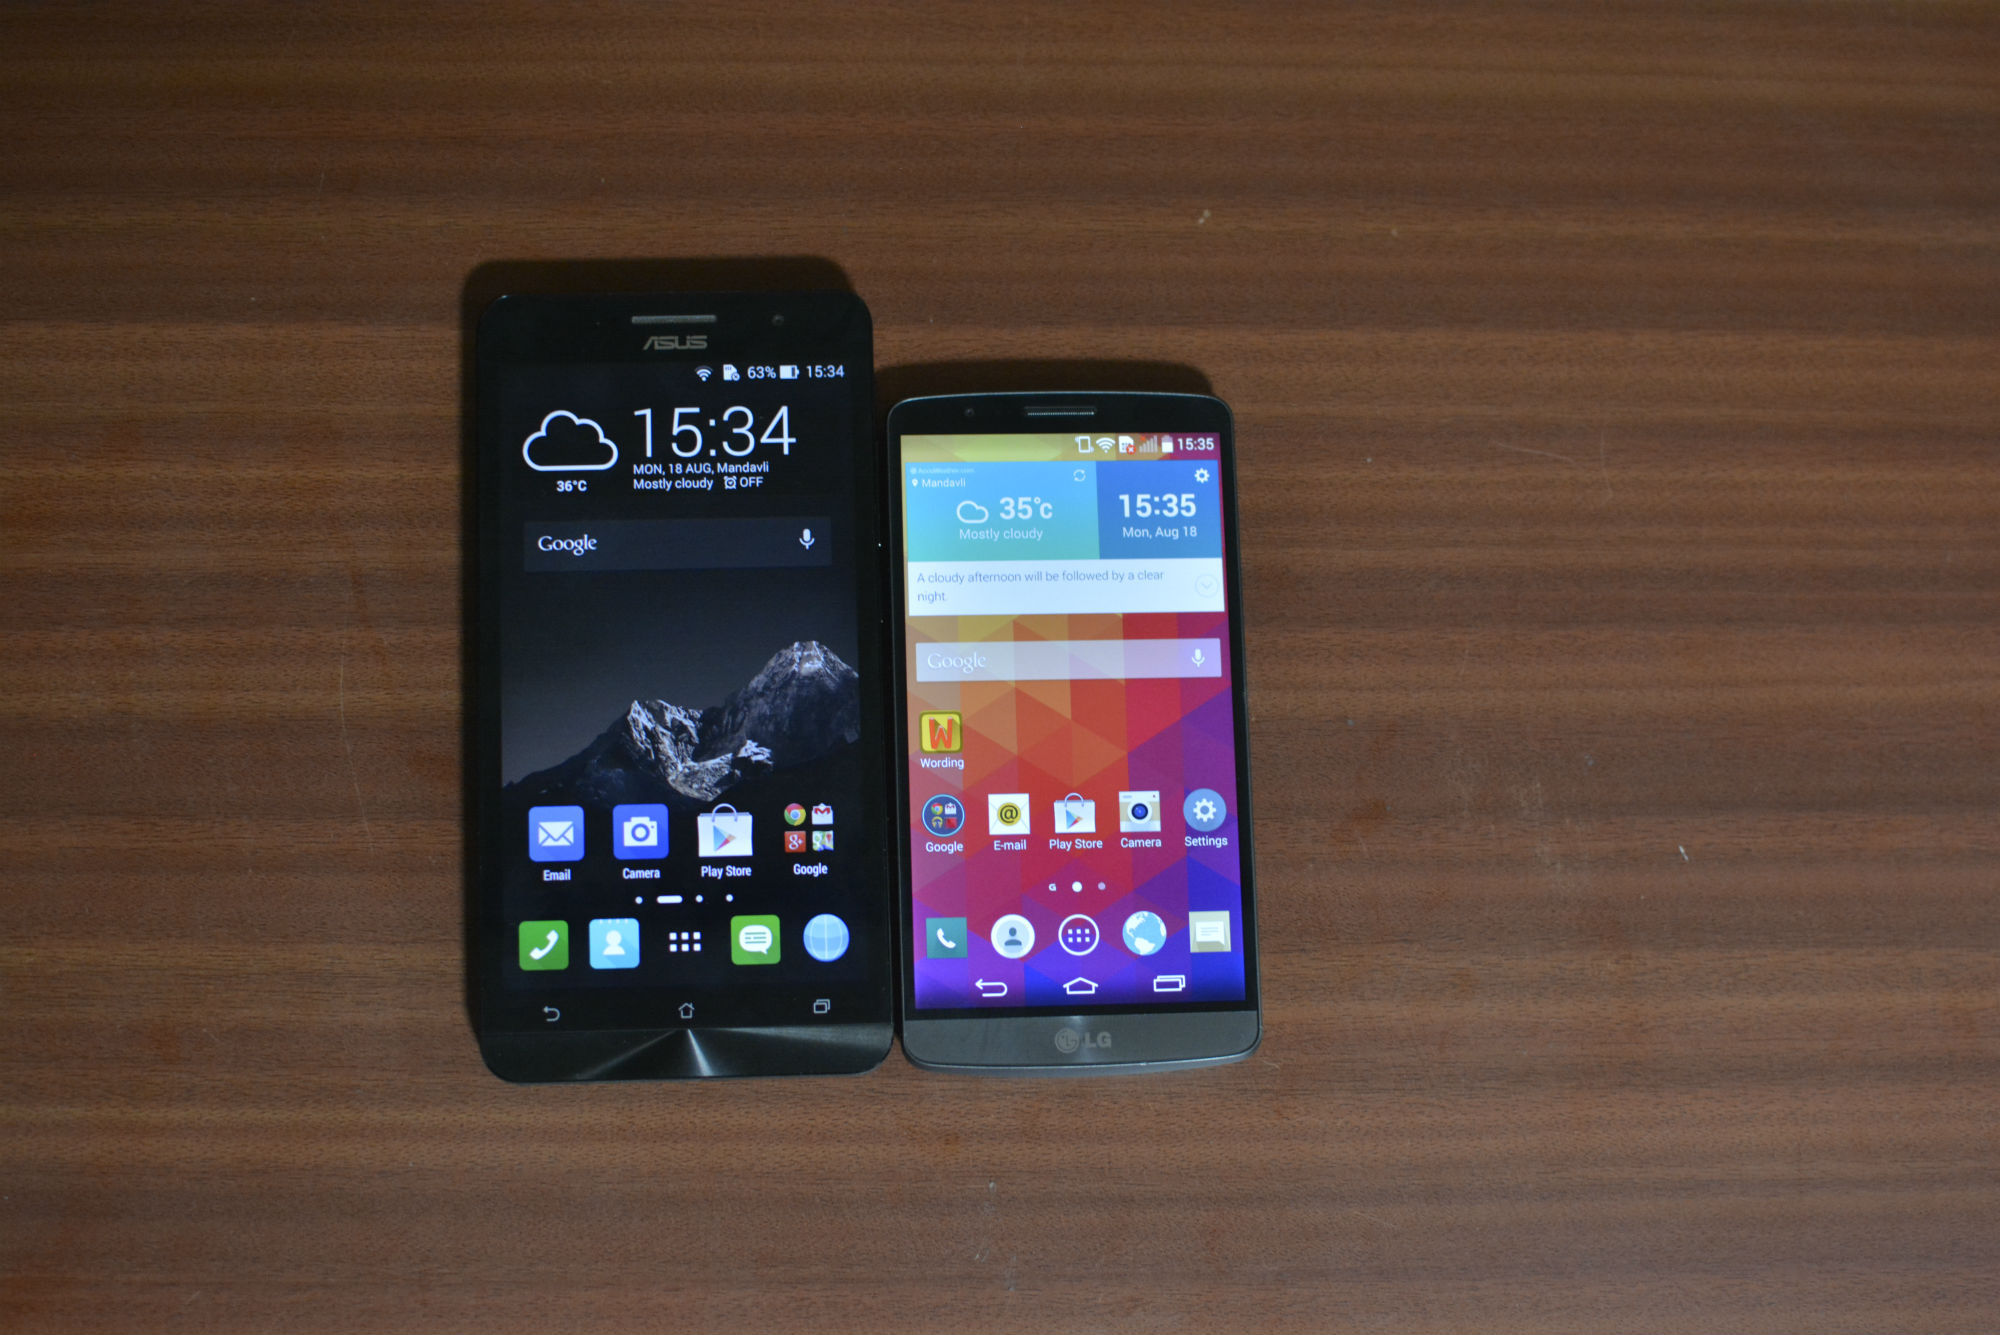 Smartphone Asus Zenfone 6: a review of the model, specifications and customer reviews 90